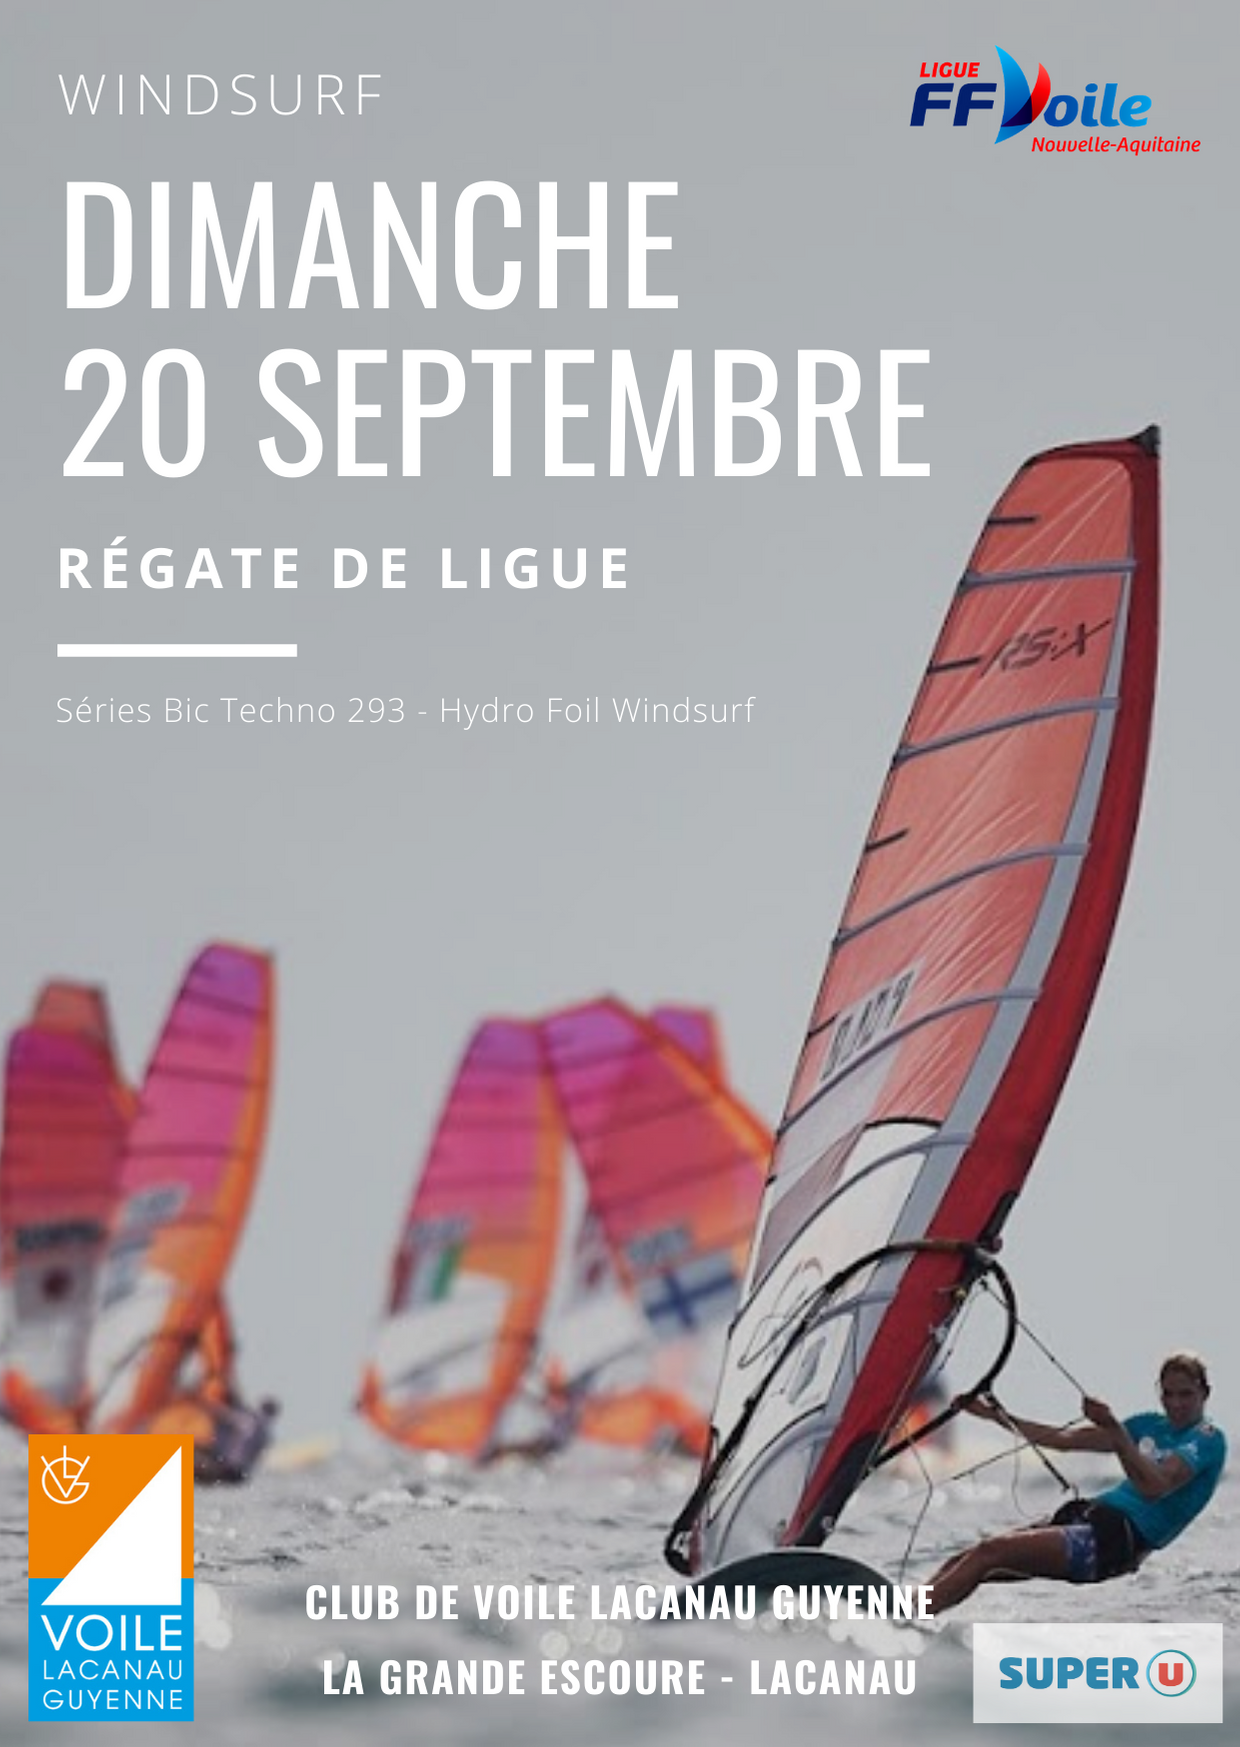 Régate de ligue du 20 Septembre